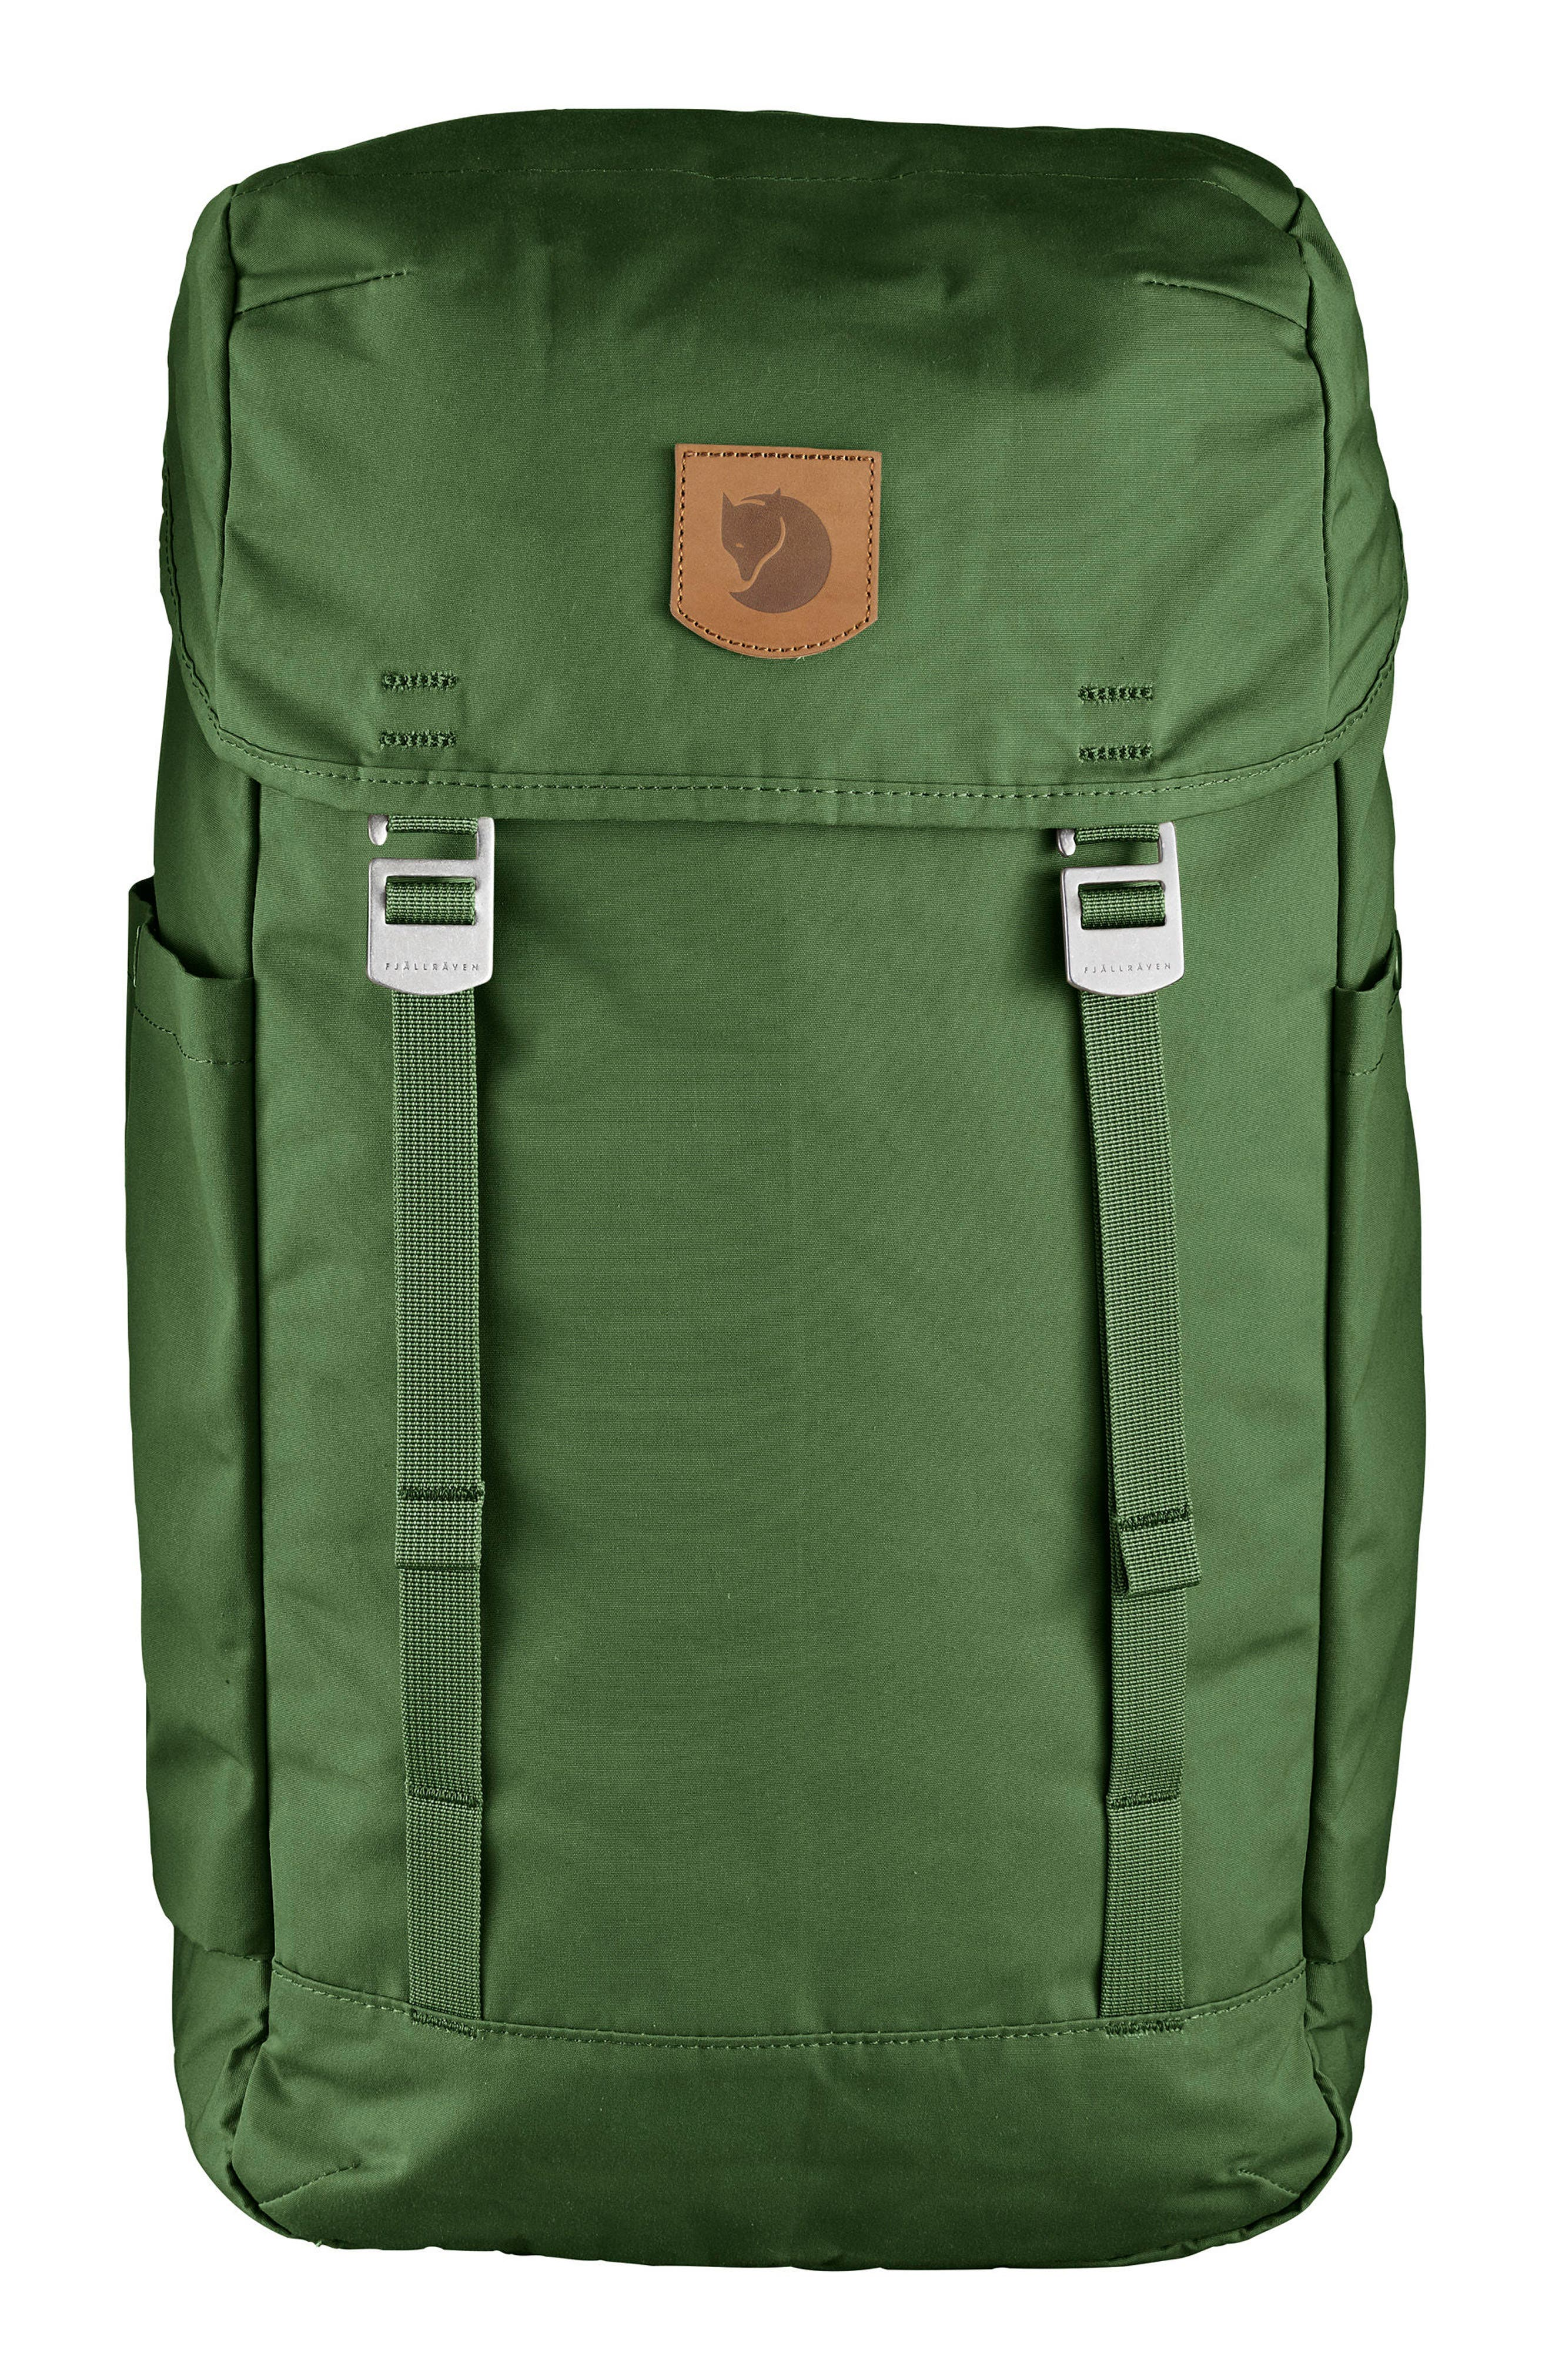 Greenland Large Backpack,                             Main thumbnail 1, color,                             FERN